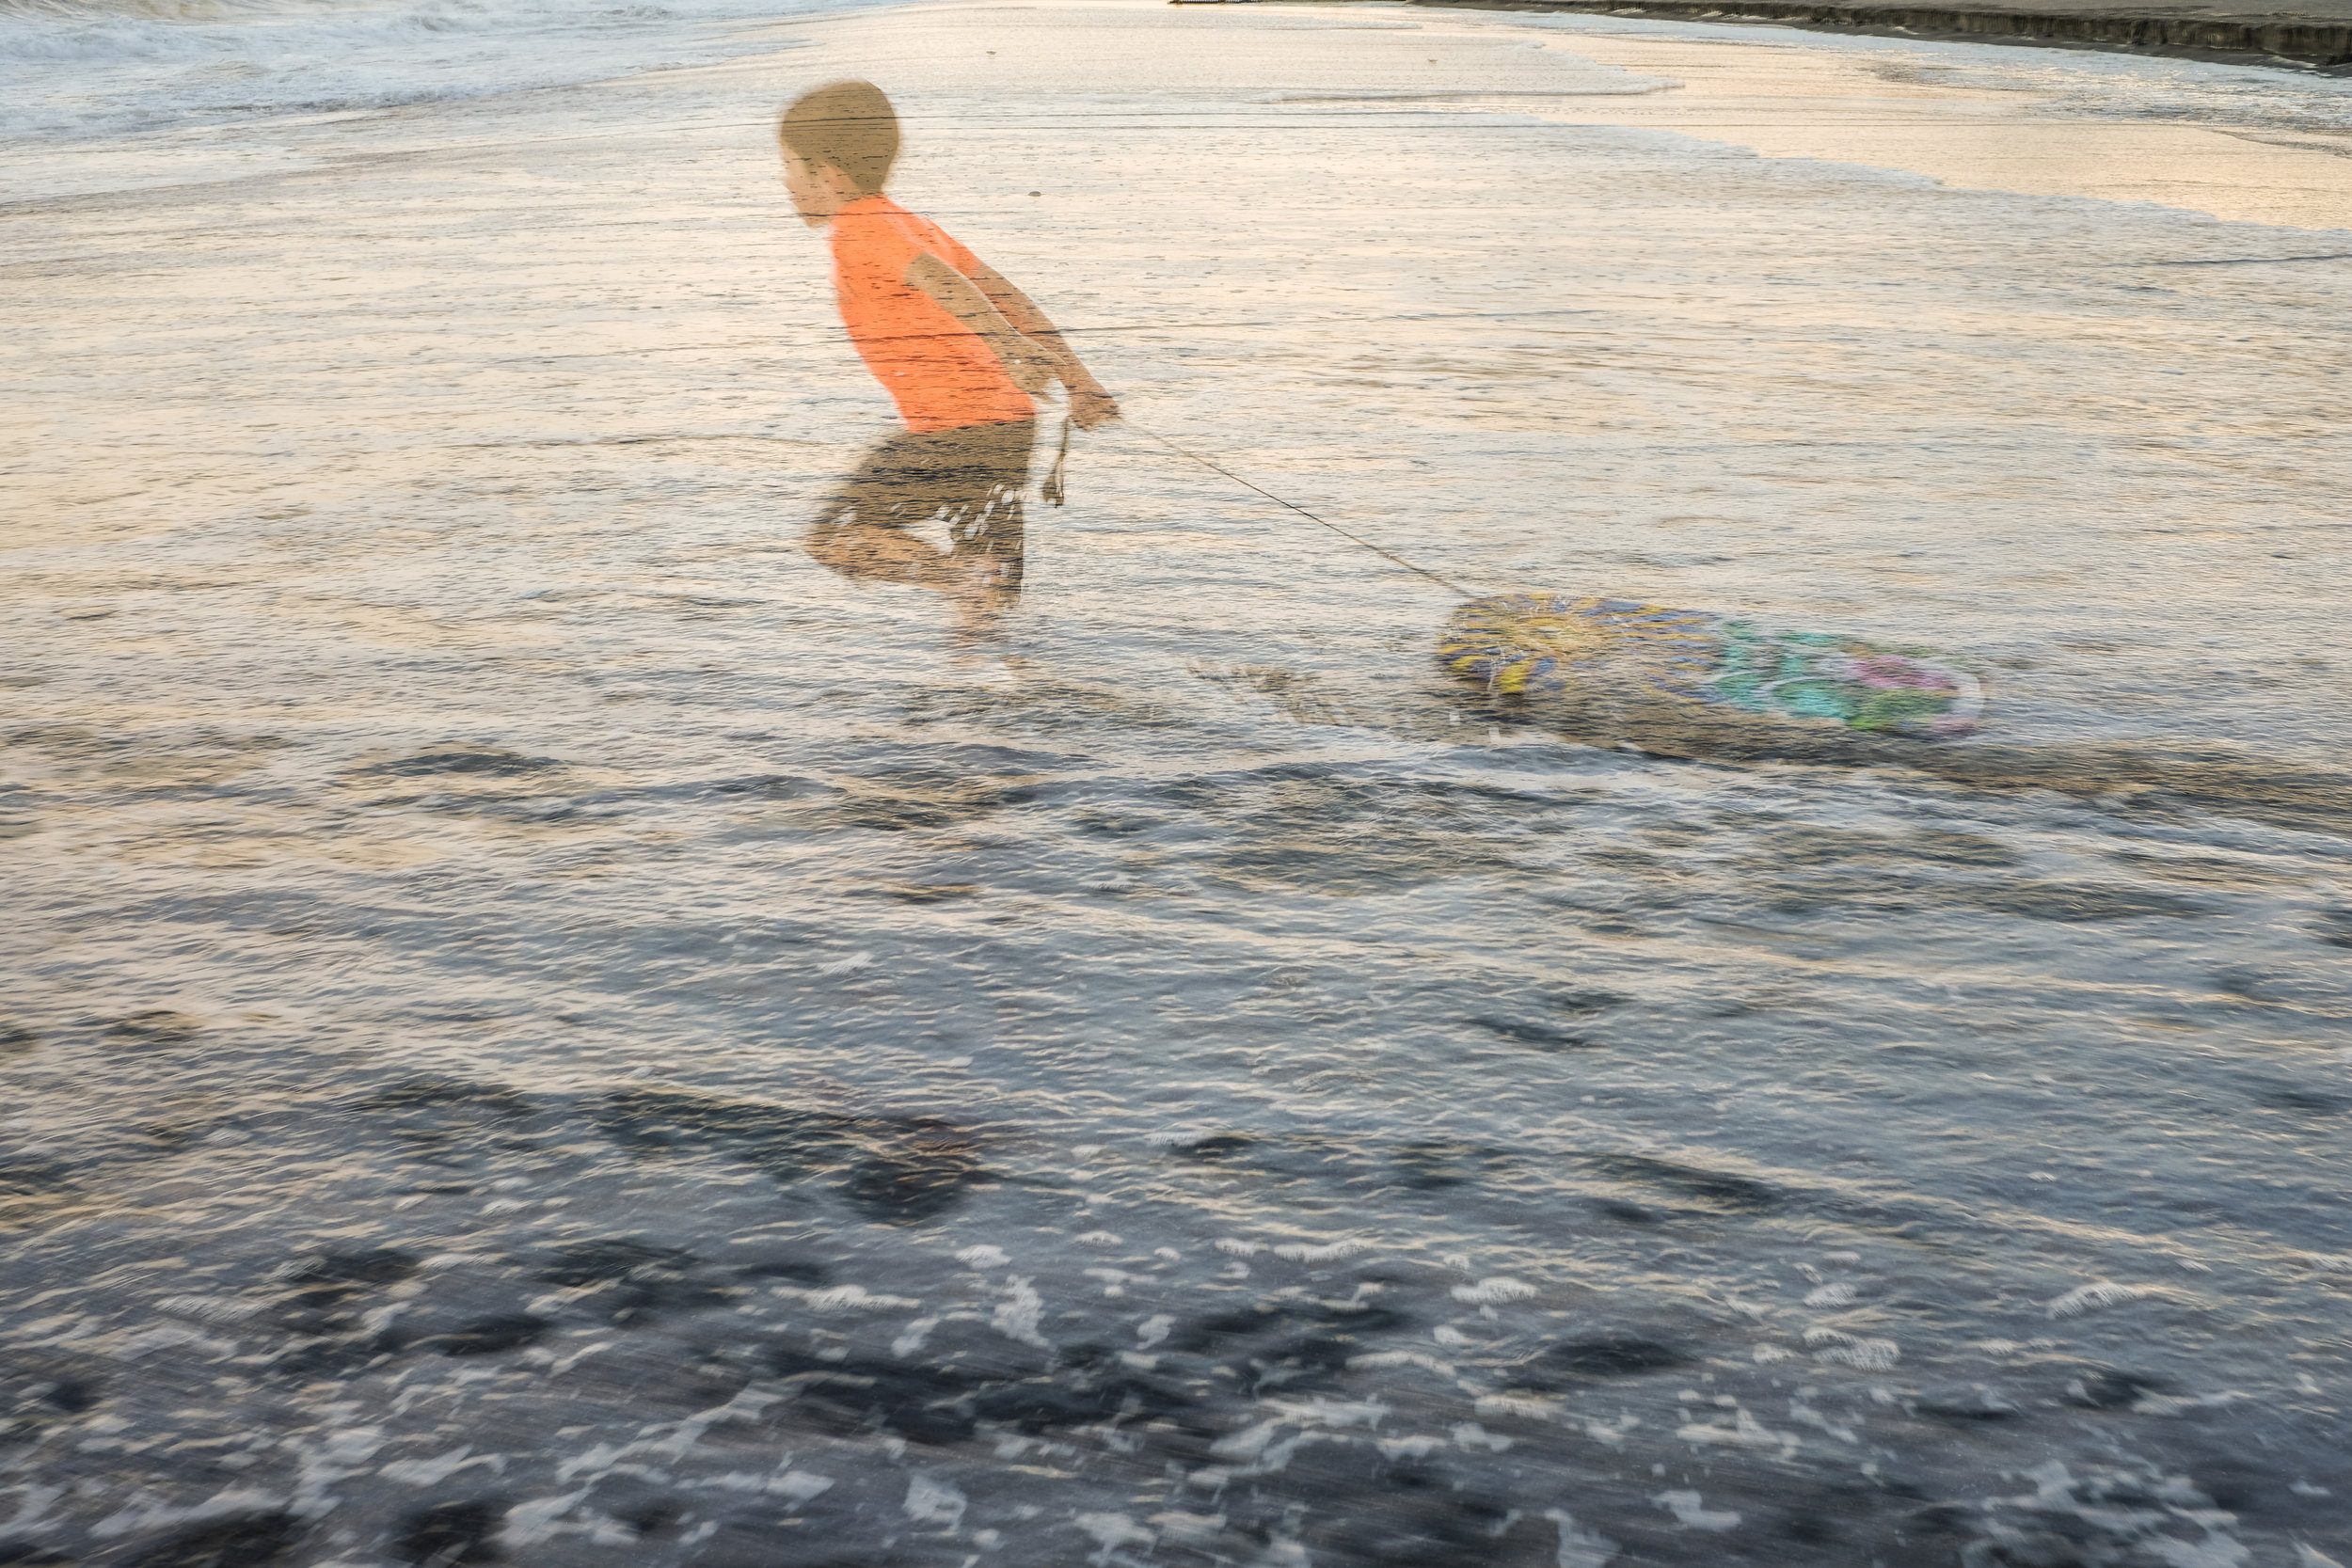 Fun image, nephew hitting the surf